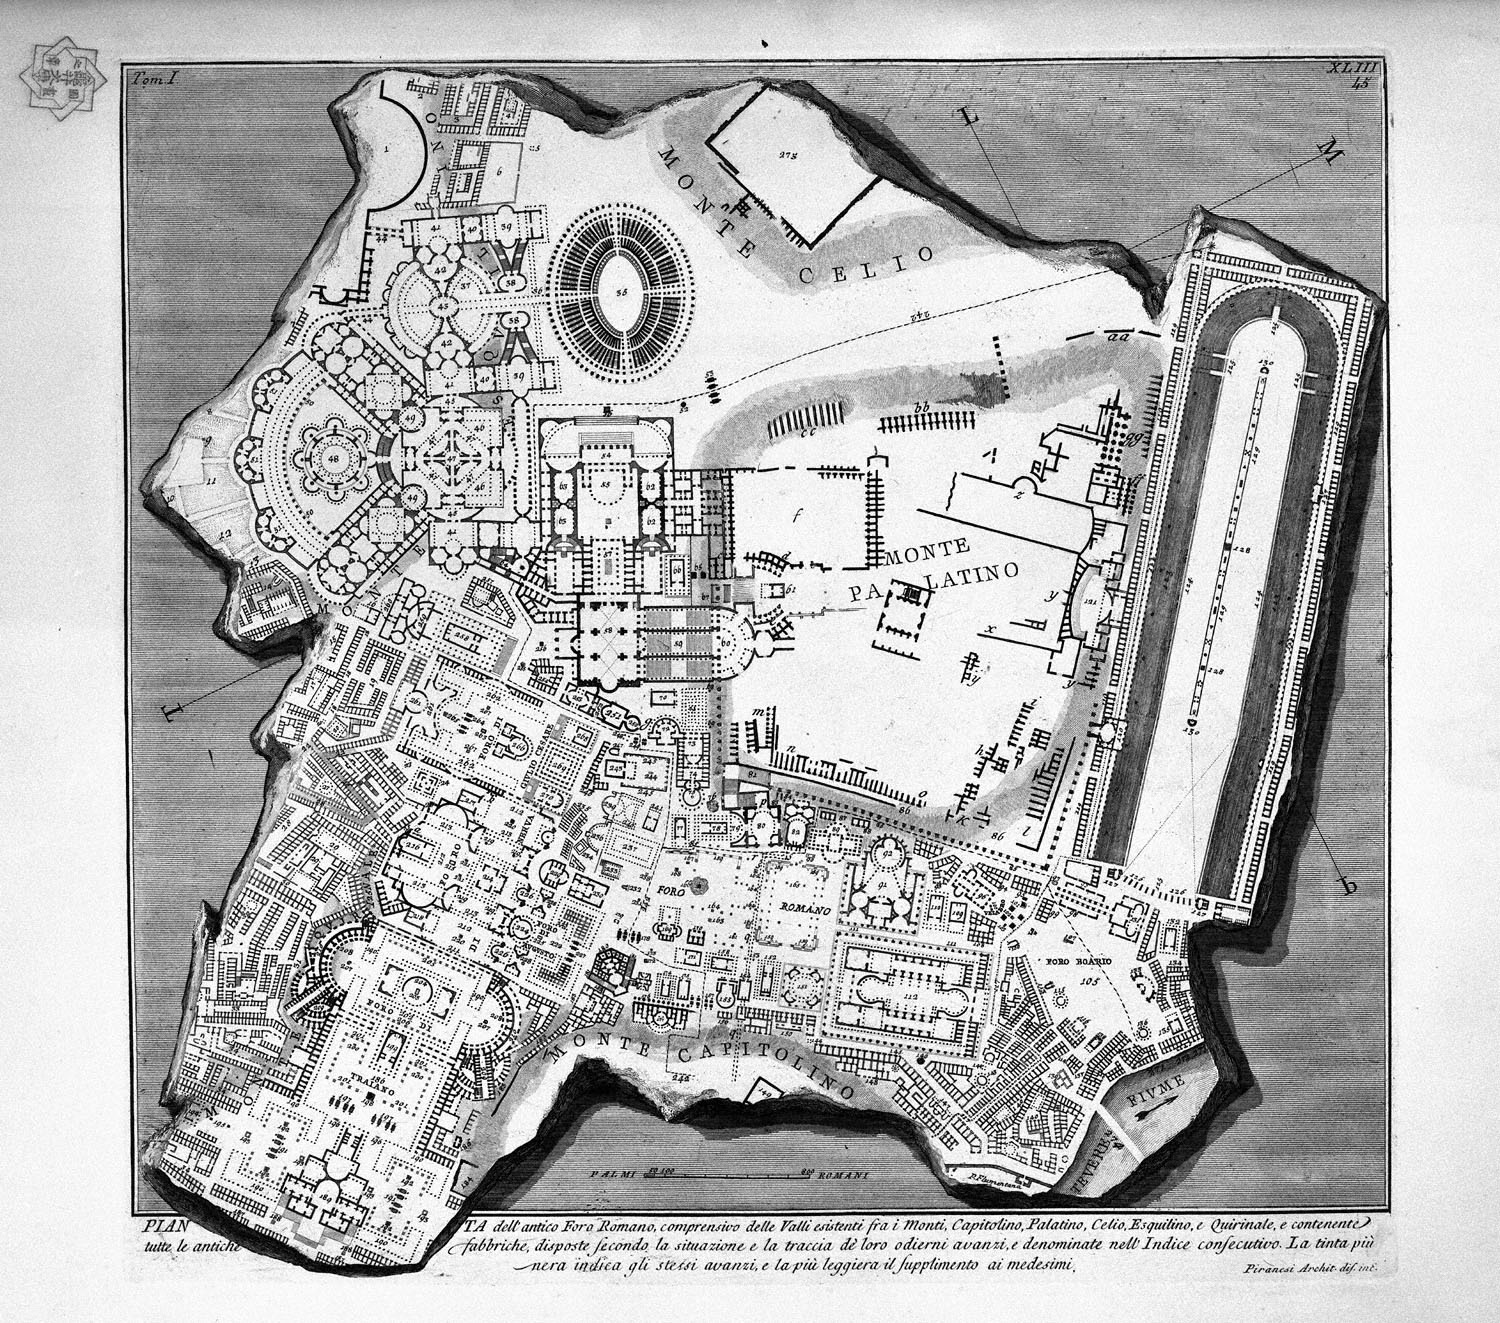 The Roman antiquities, t. 1, Plate XLII. Plan of the Baths of Diocletian, 1756